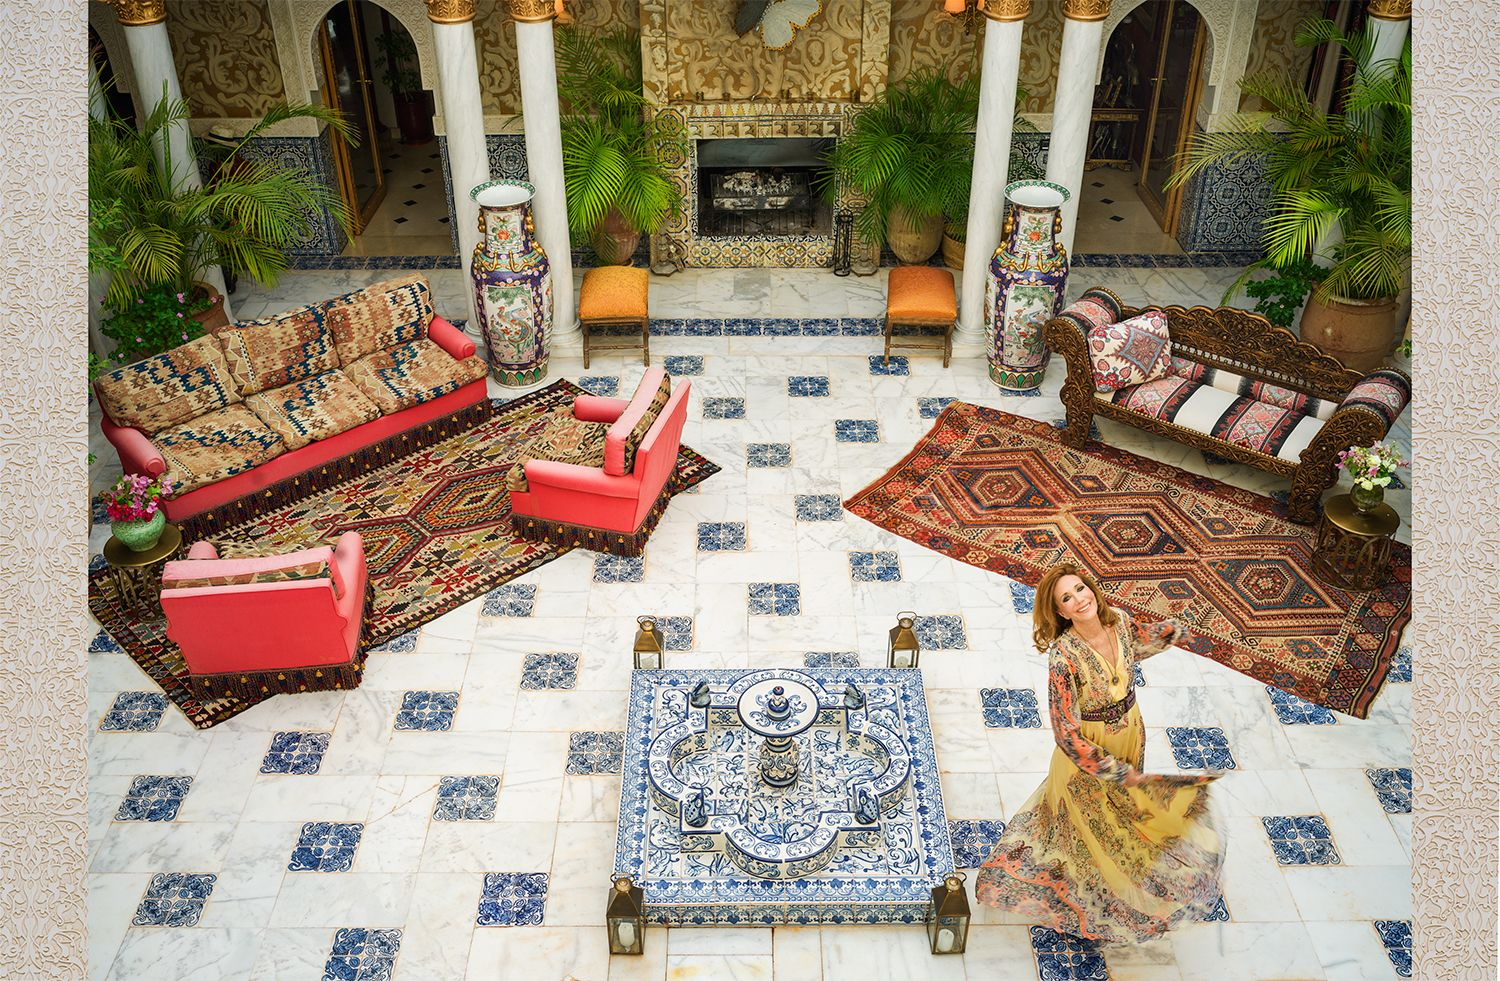 Marisa Berenson's Creative Talents Are on Display in Her Marrakech Home